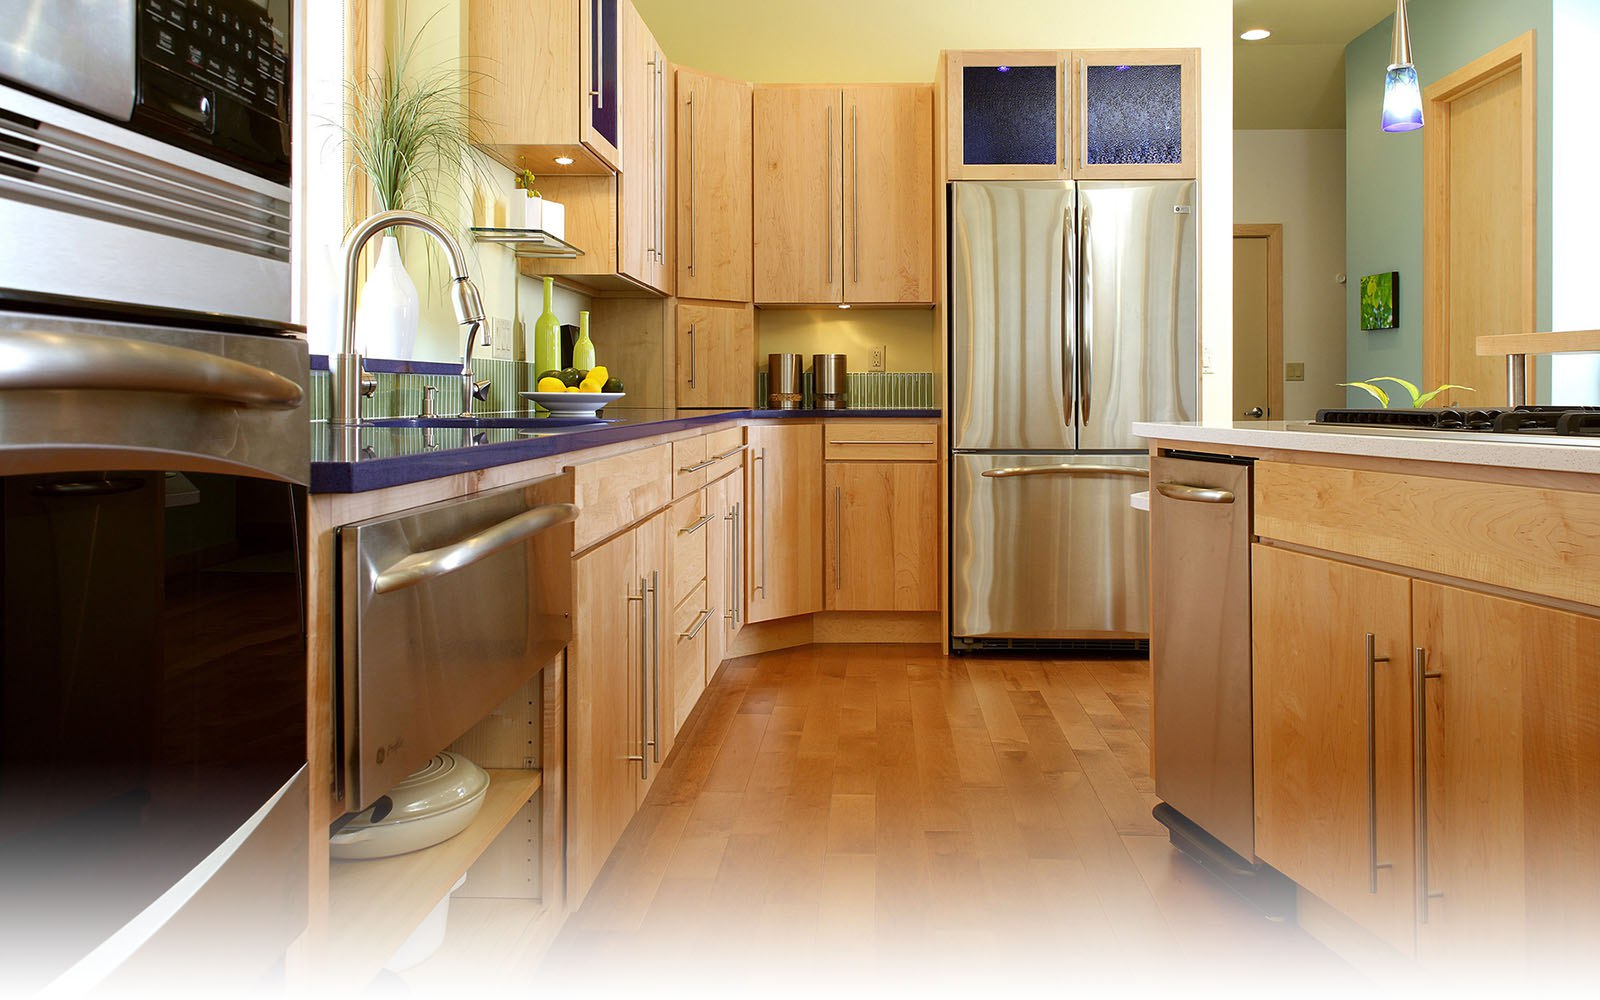 Kitchen Cabinets Boston kitchen and bath cabinets, design and remodeling - norfolk kitchen